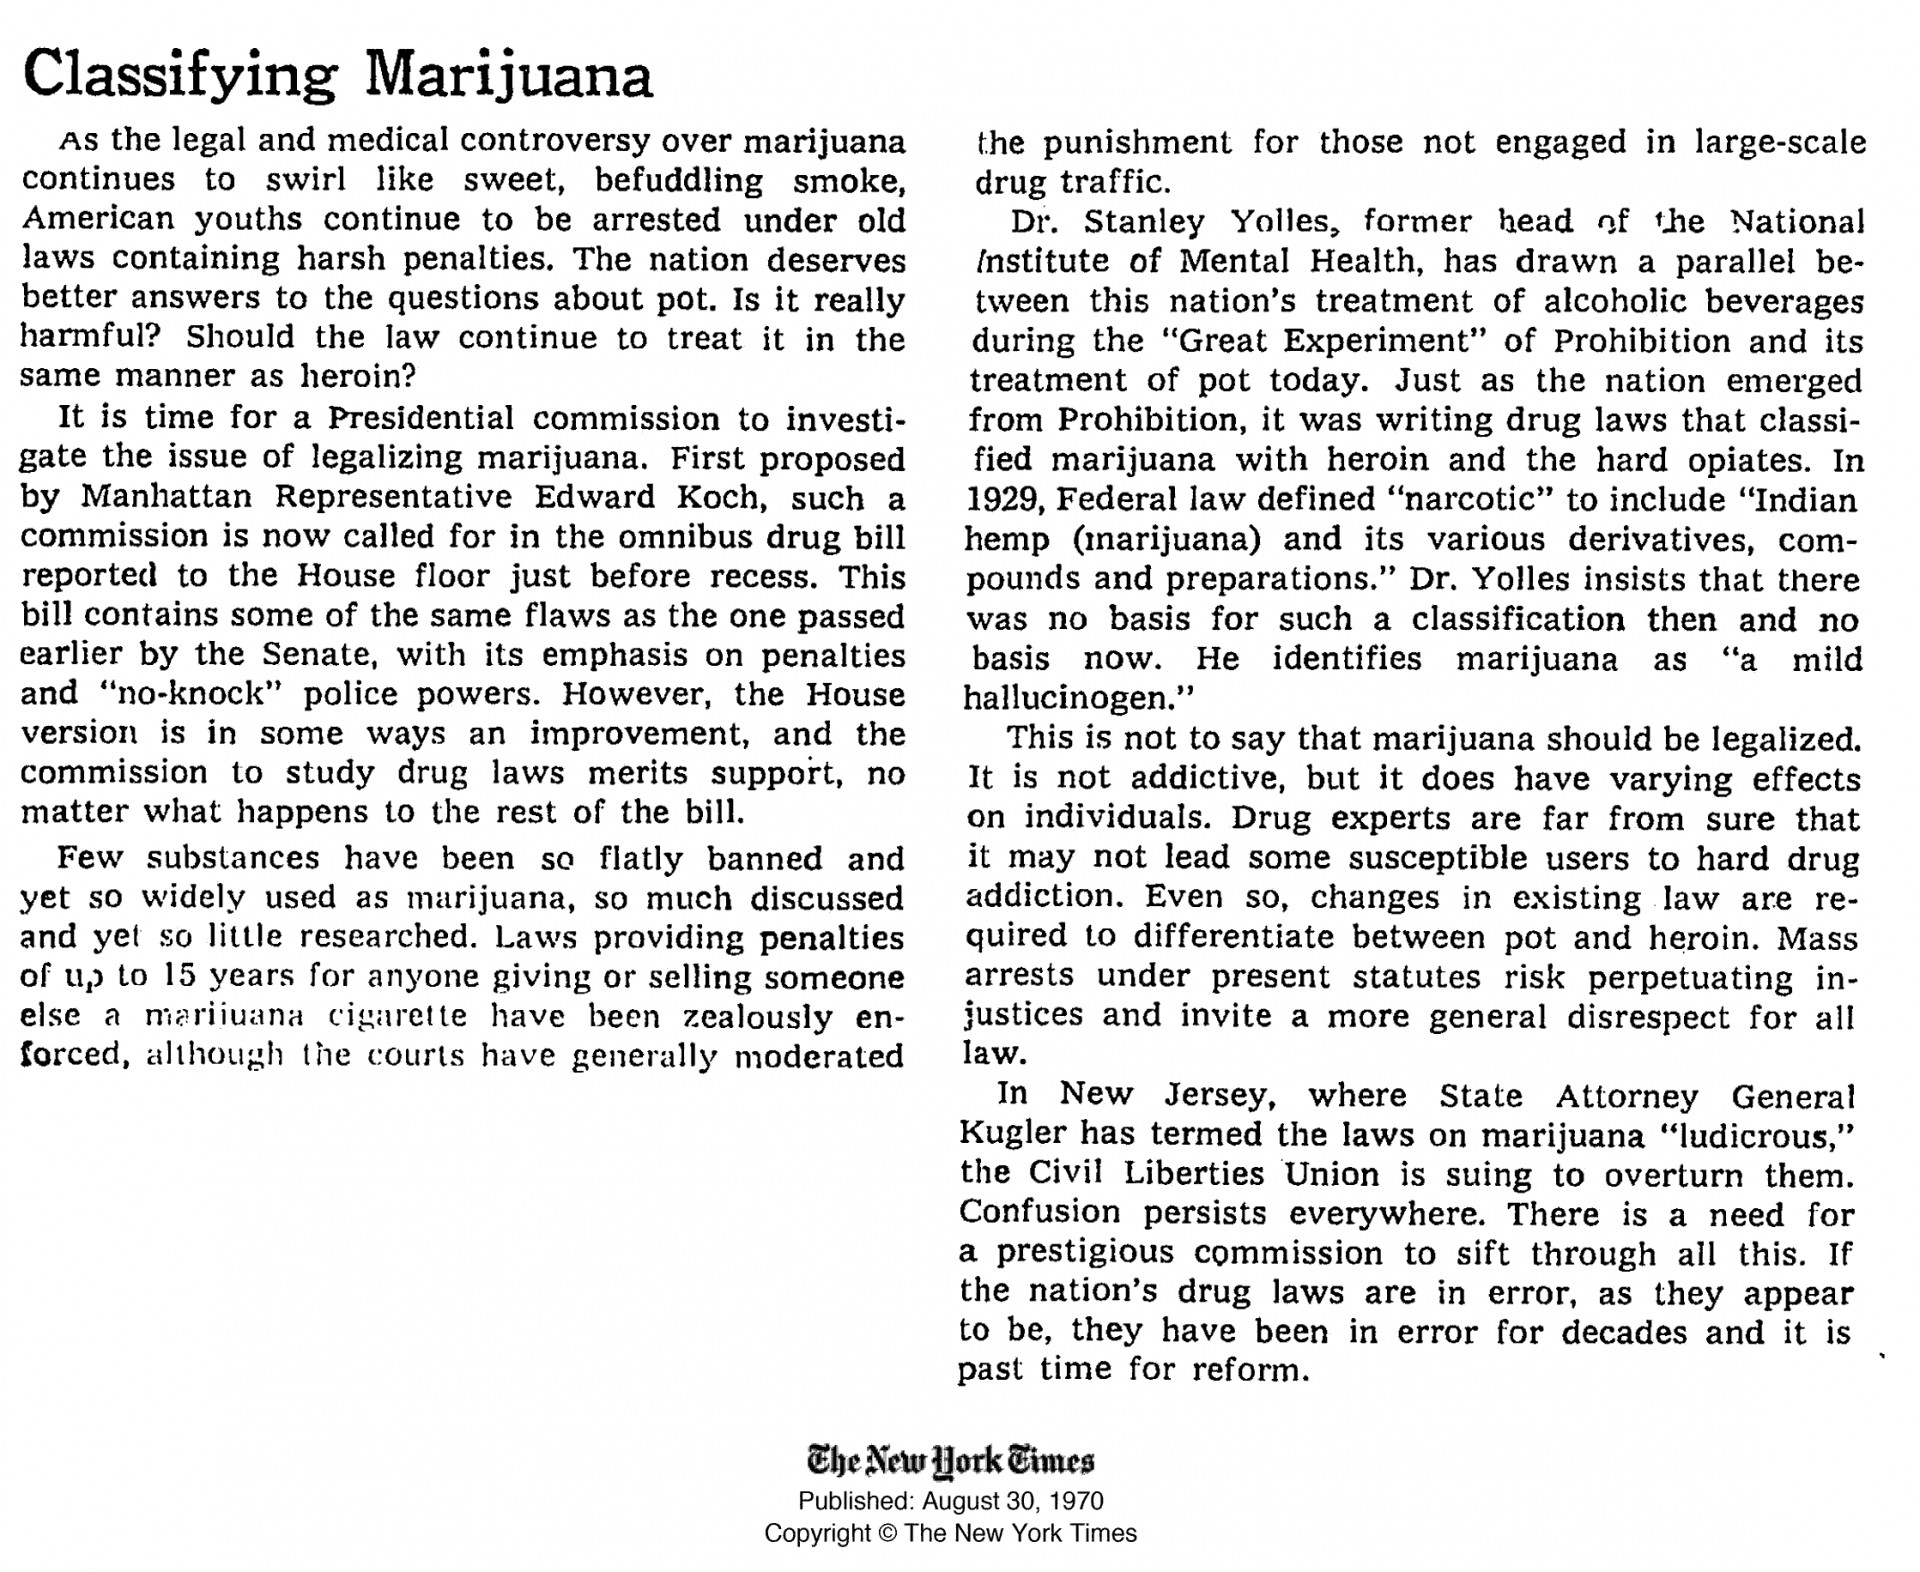 003 High Time Classifying Marijuana August Essay Example Unforgettable Argumentative Legalization Of Persuasive Outline Topics 1920